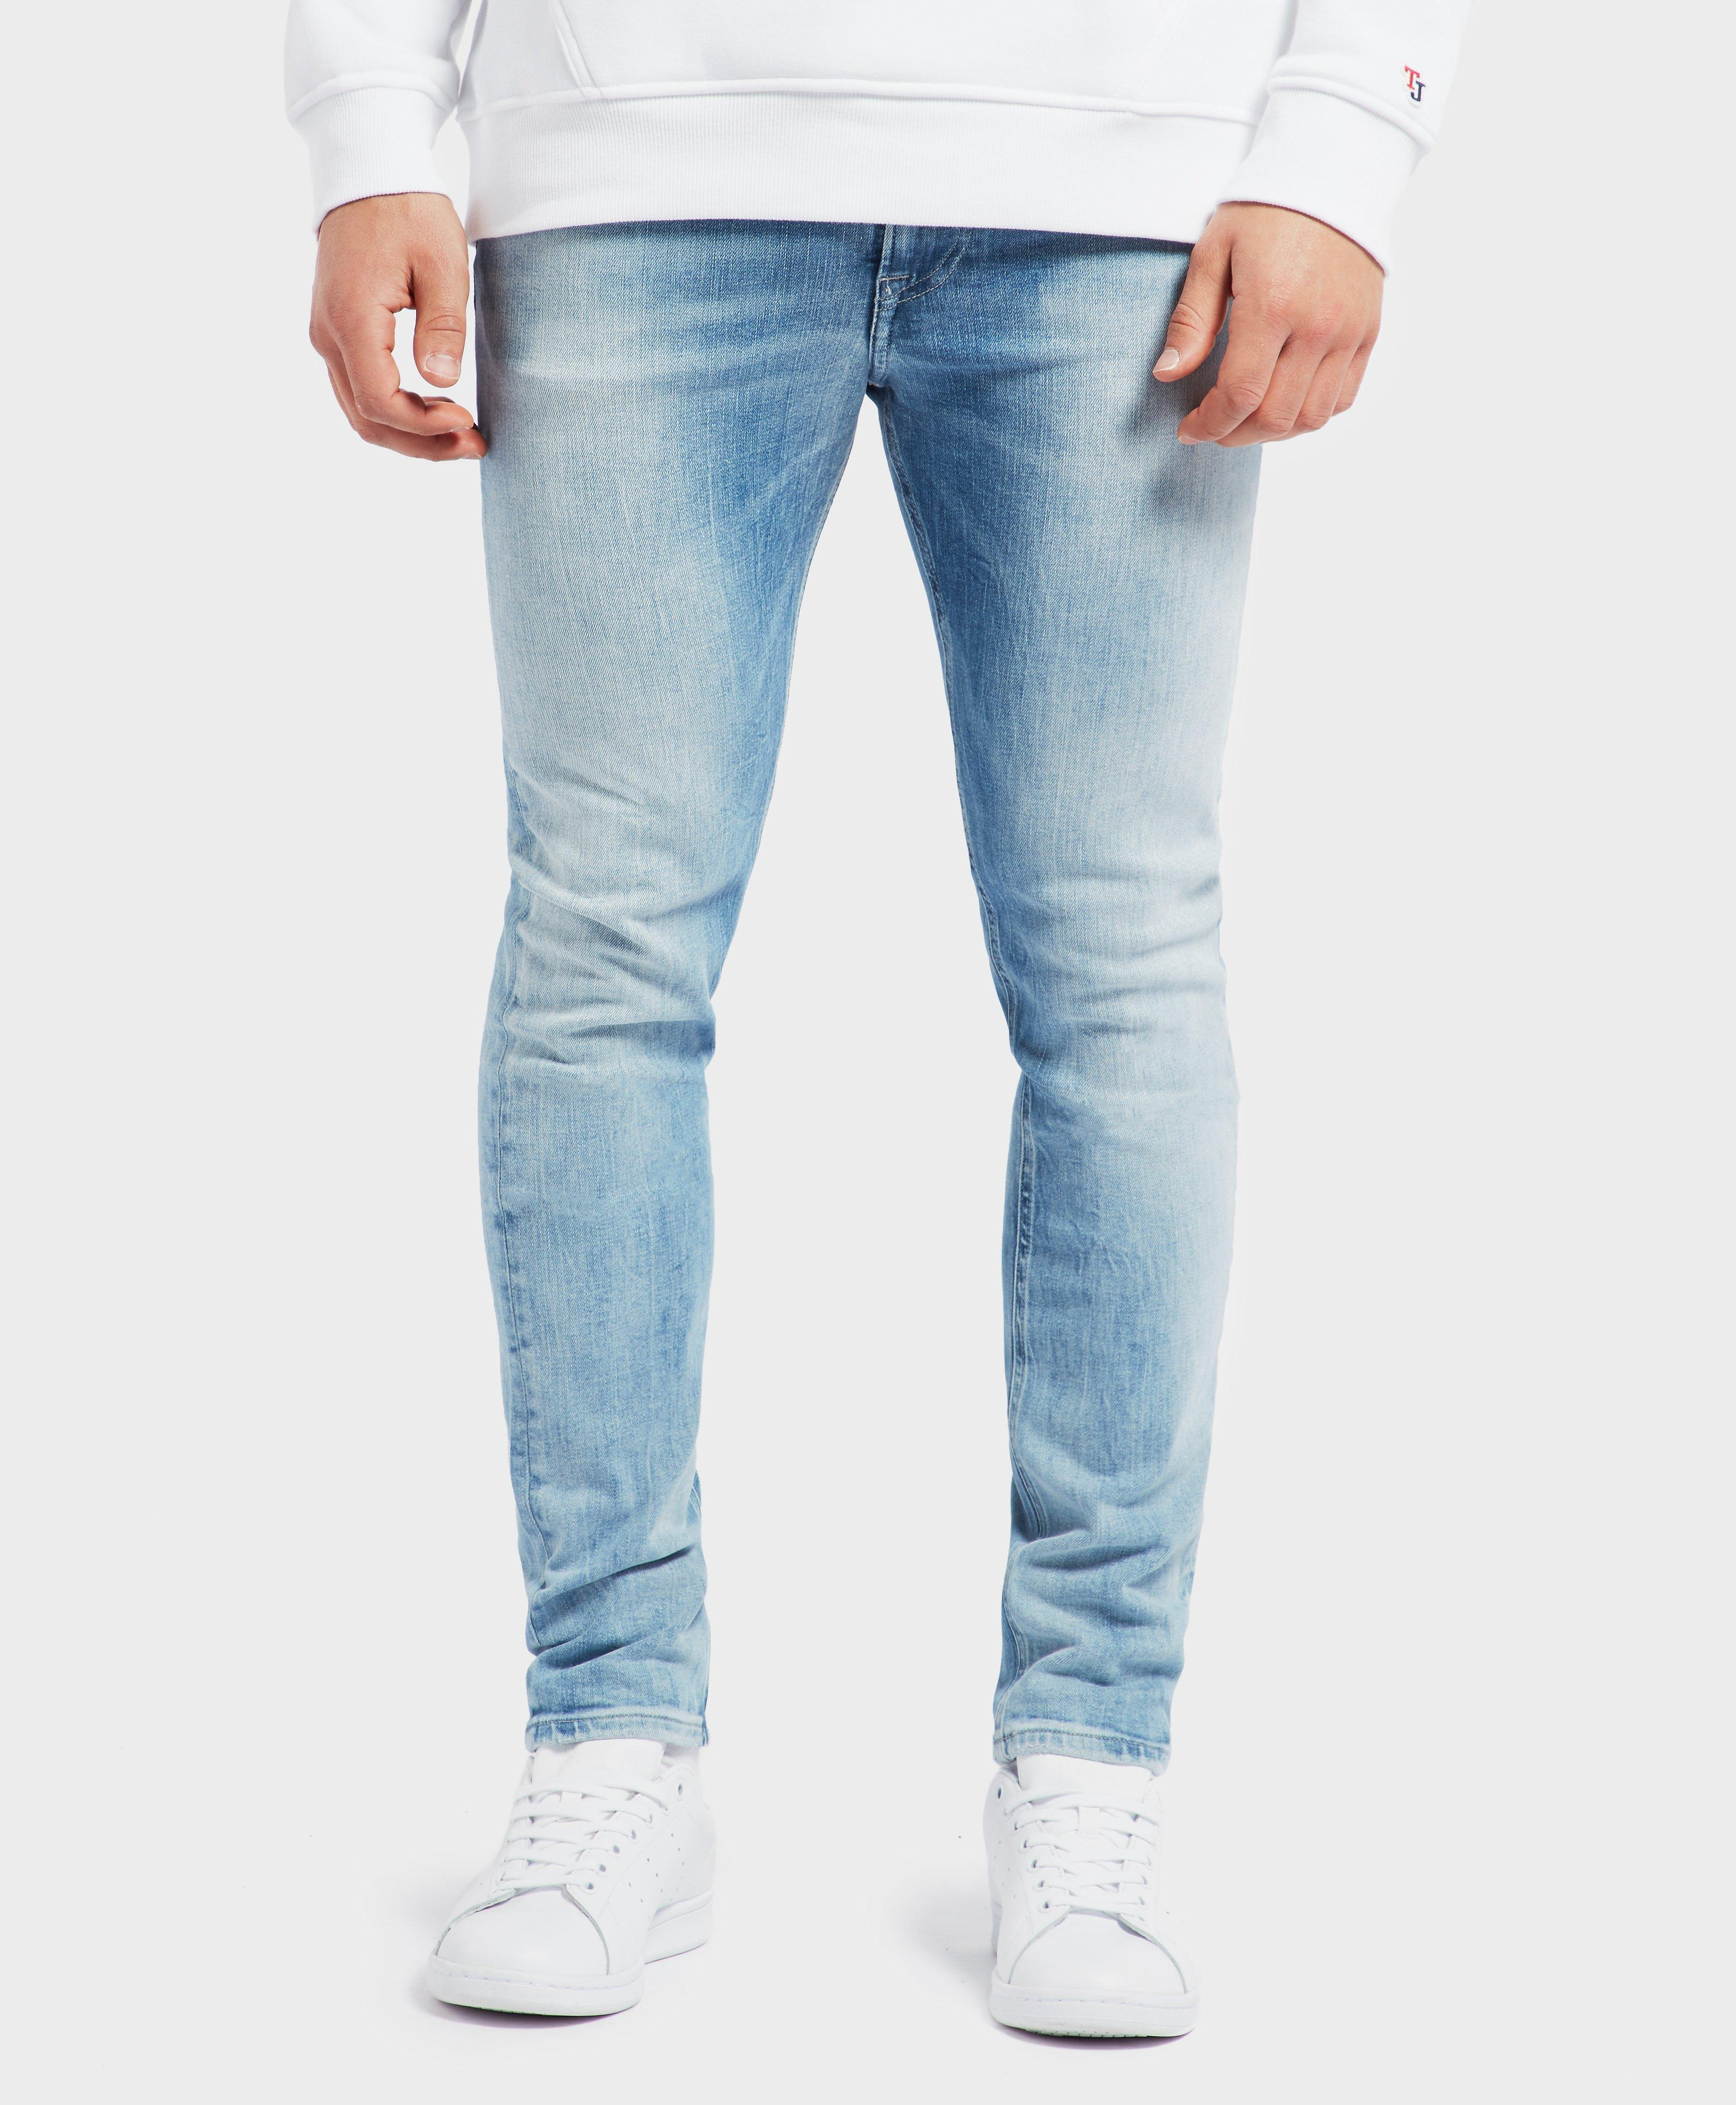 c43db054e Tommy Hilfiger Simon Stretch Skinny Jeans - Online Exclusive in Blue ...